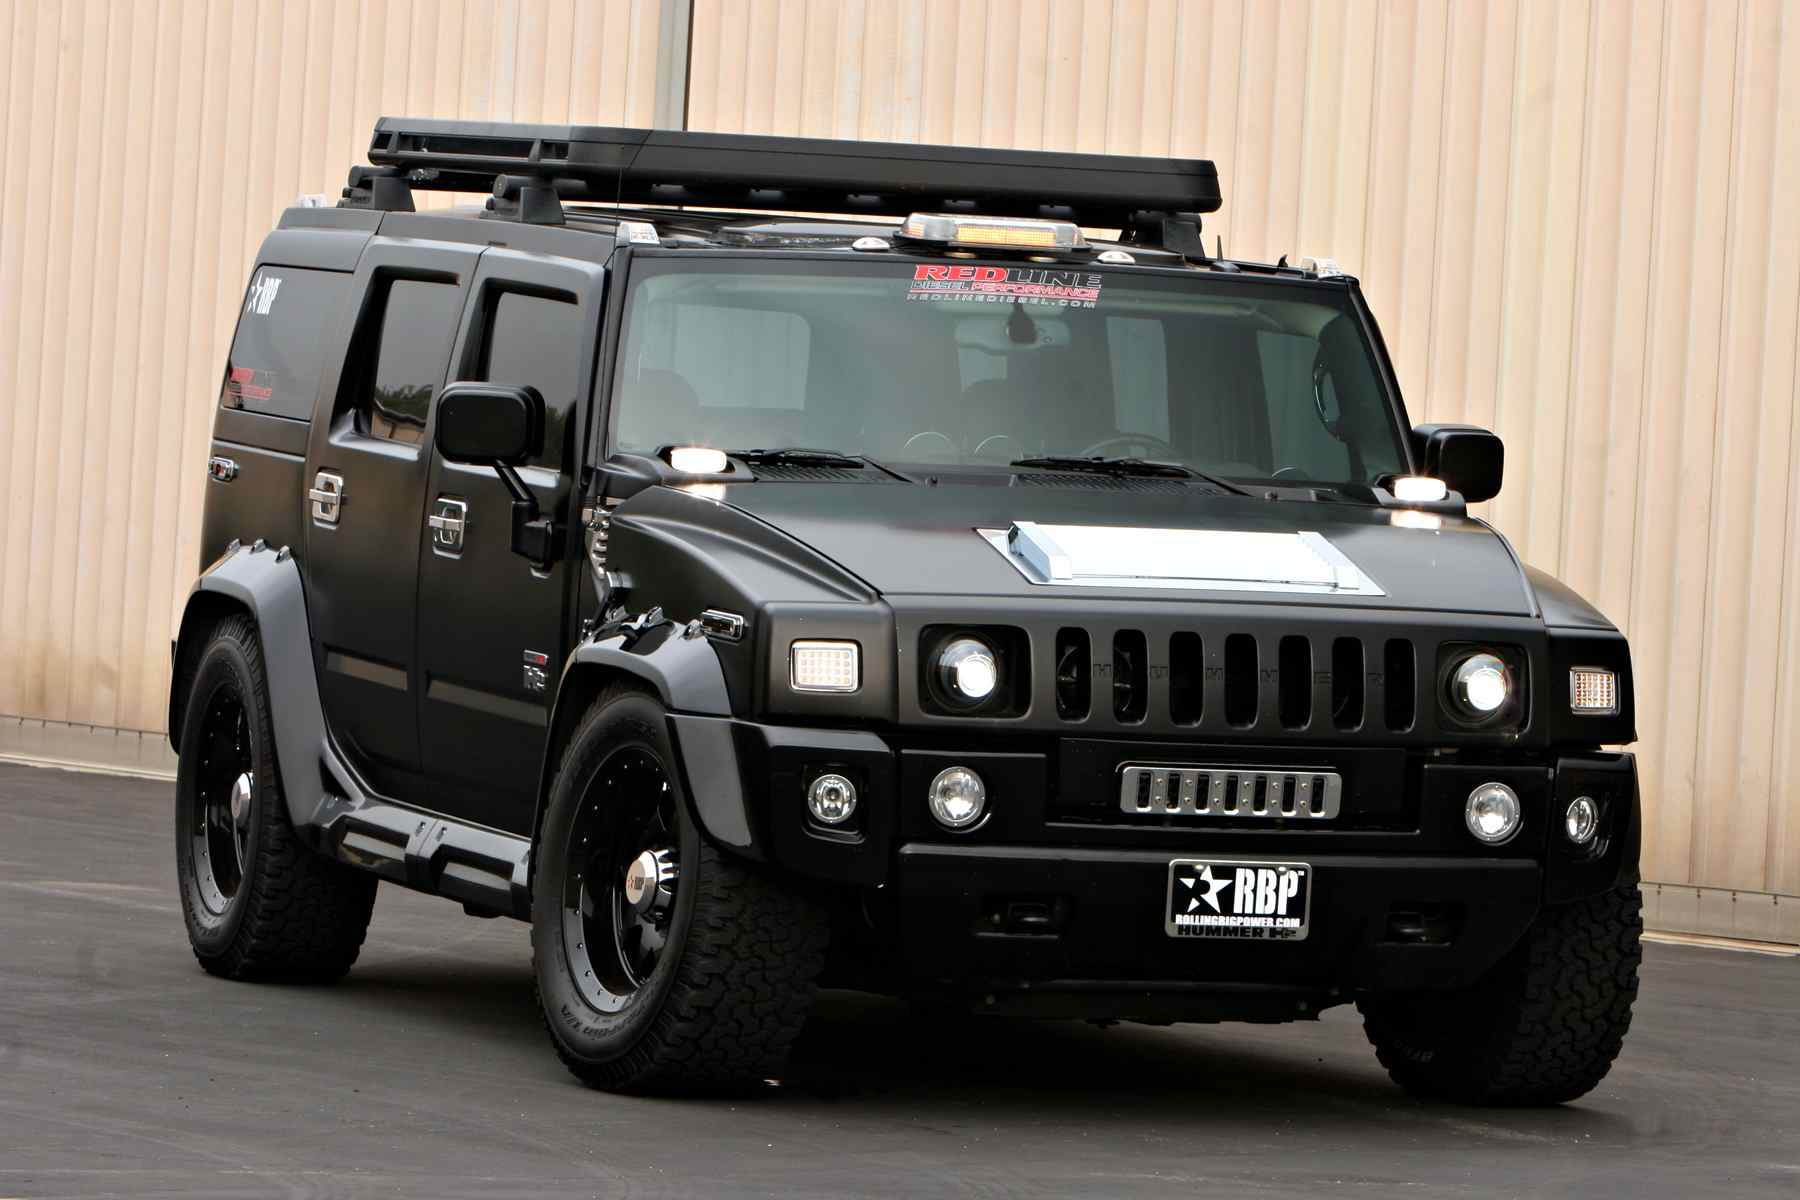 Hummer H2 for Sale Kuwait Free Classifieds Muamat Vehicles free download image Wallpaper